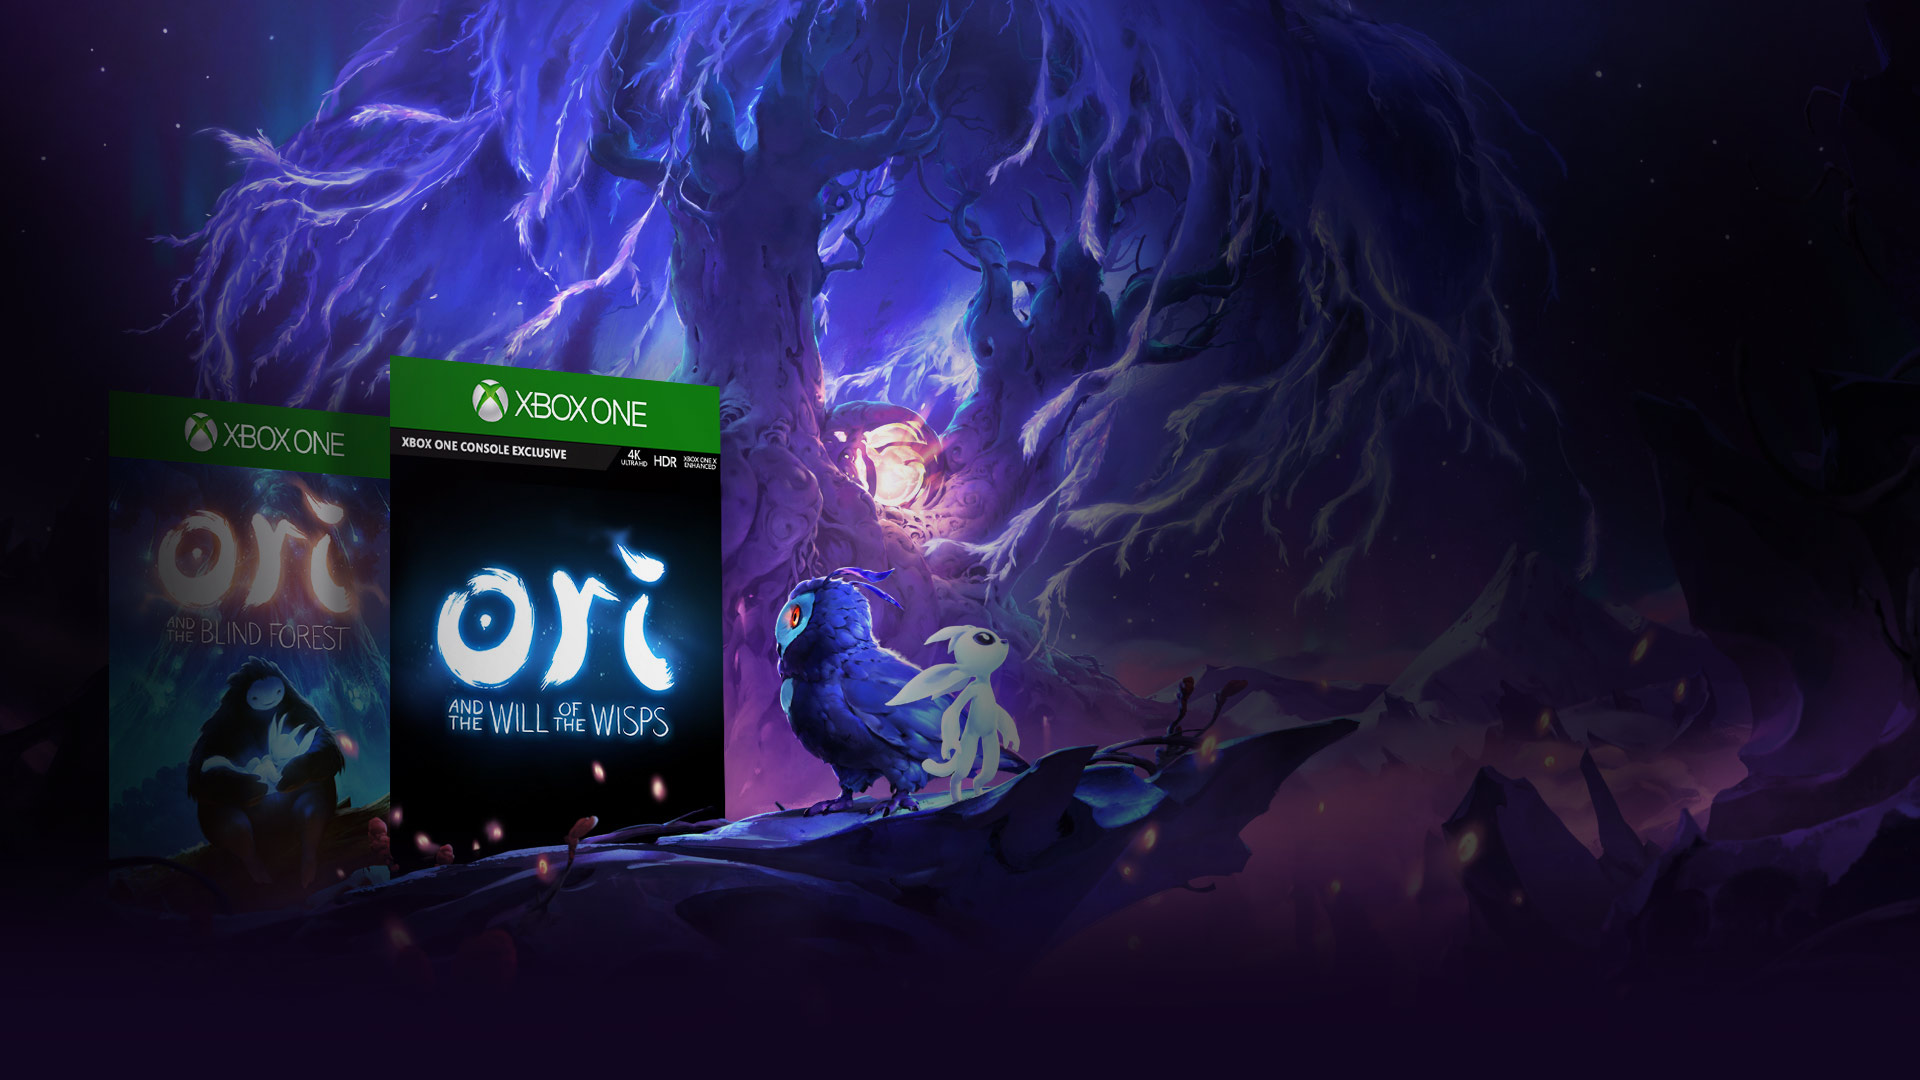 View of Ori and the Will of the Wisps characters standing on the edge of a snowy ledge